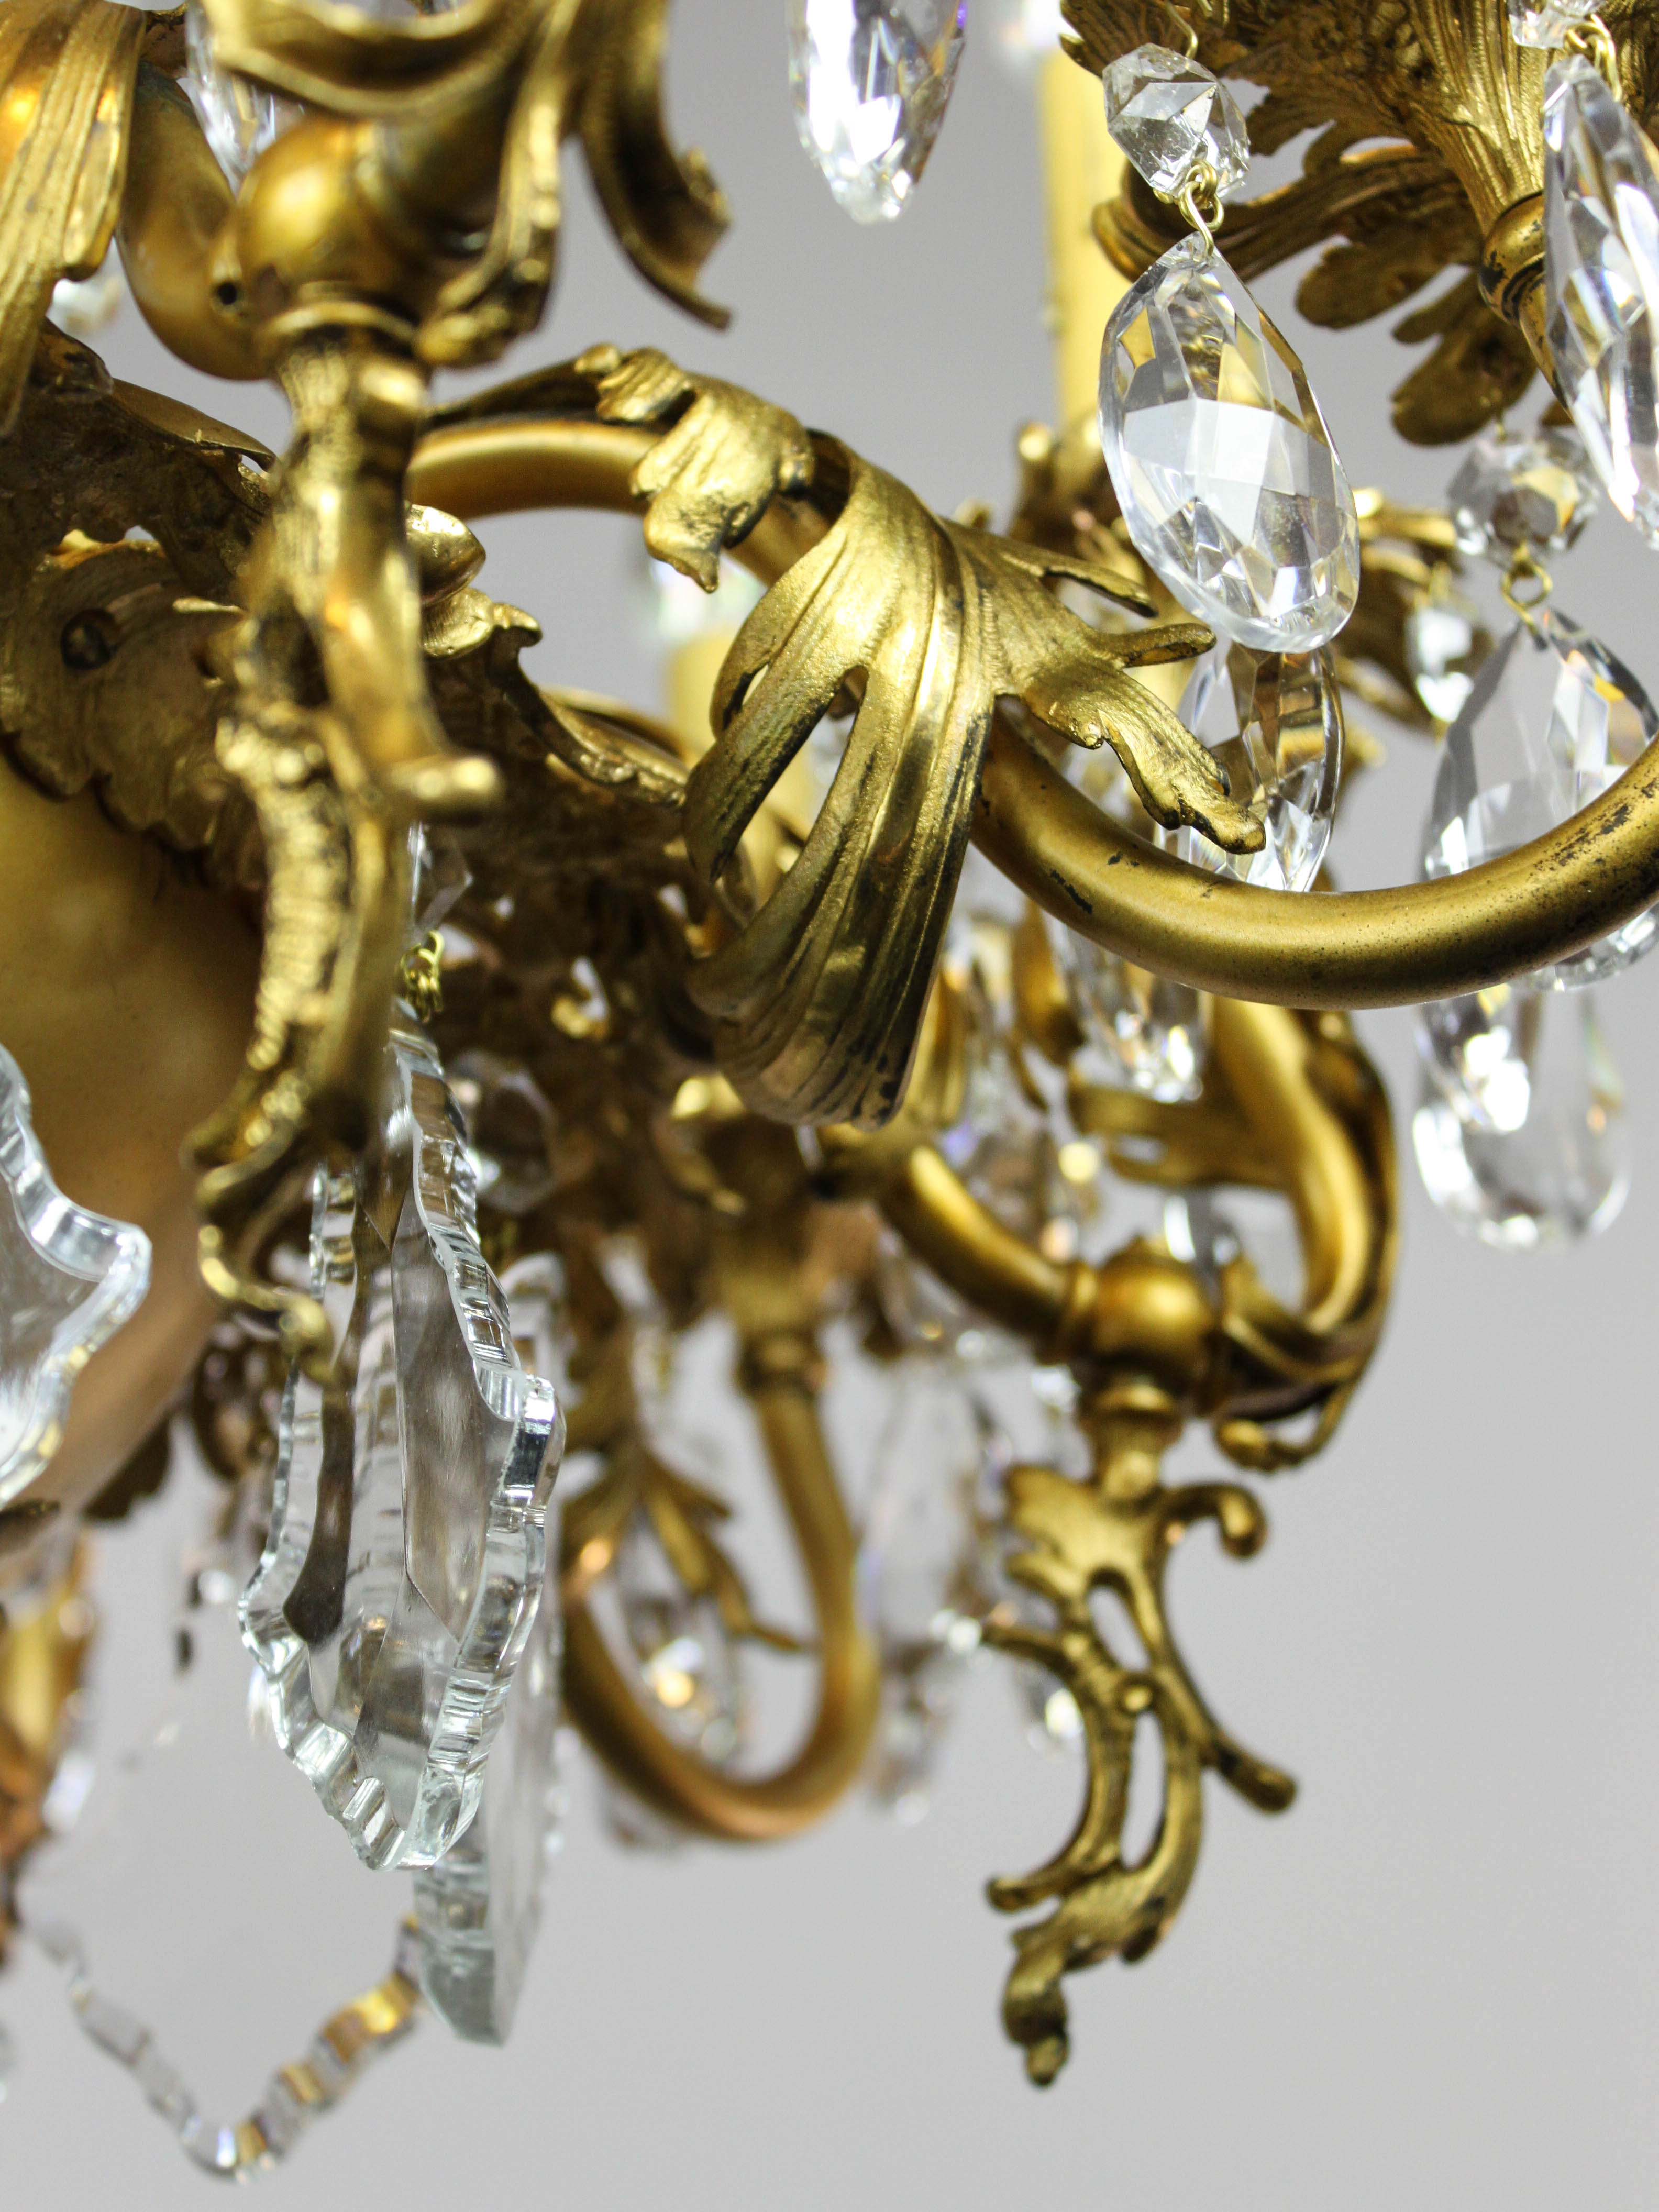 GoldPlated Rococo Converted Gas Chandelier 10Light